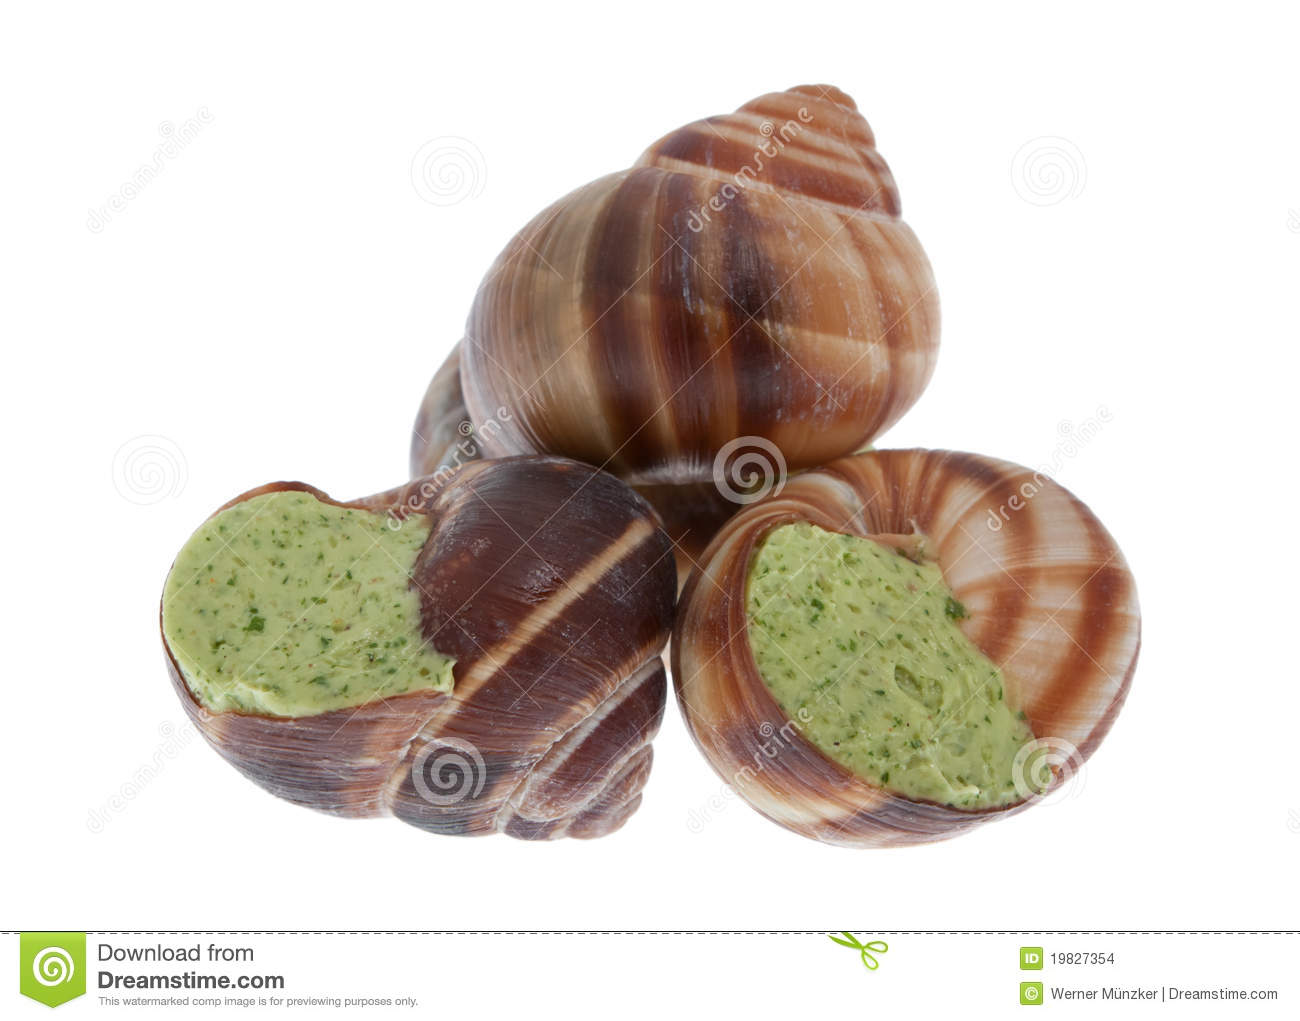 More similar stock images of ` Snails with herb butter `